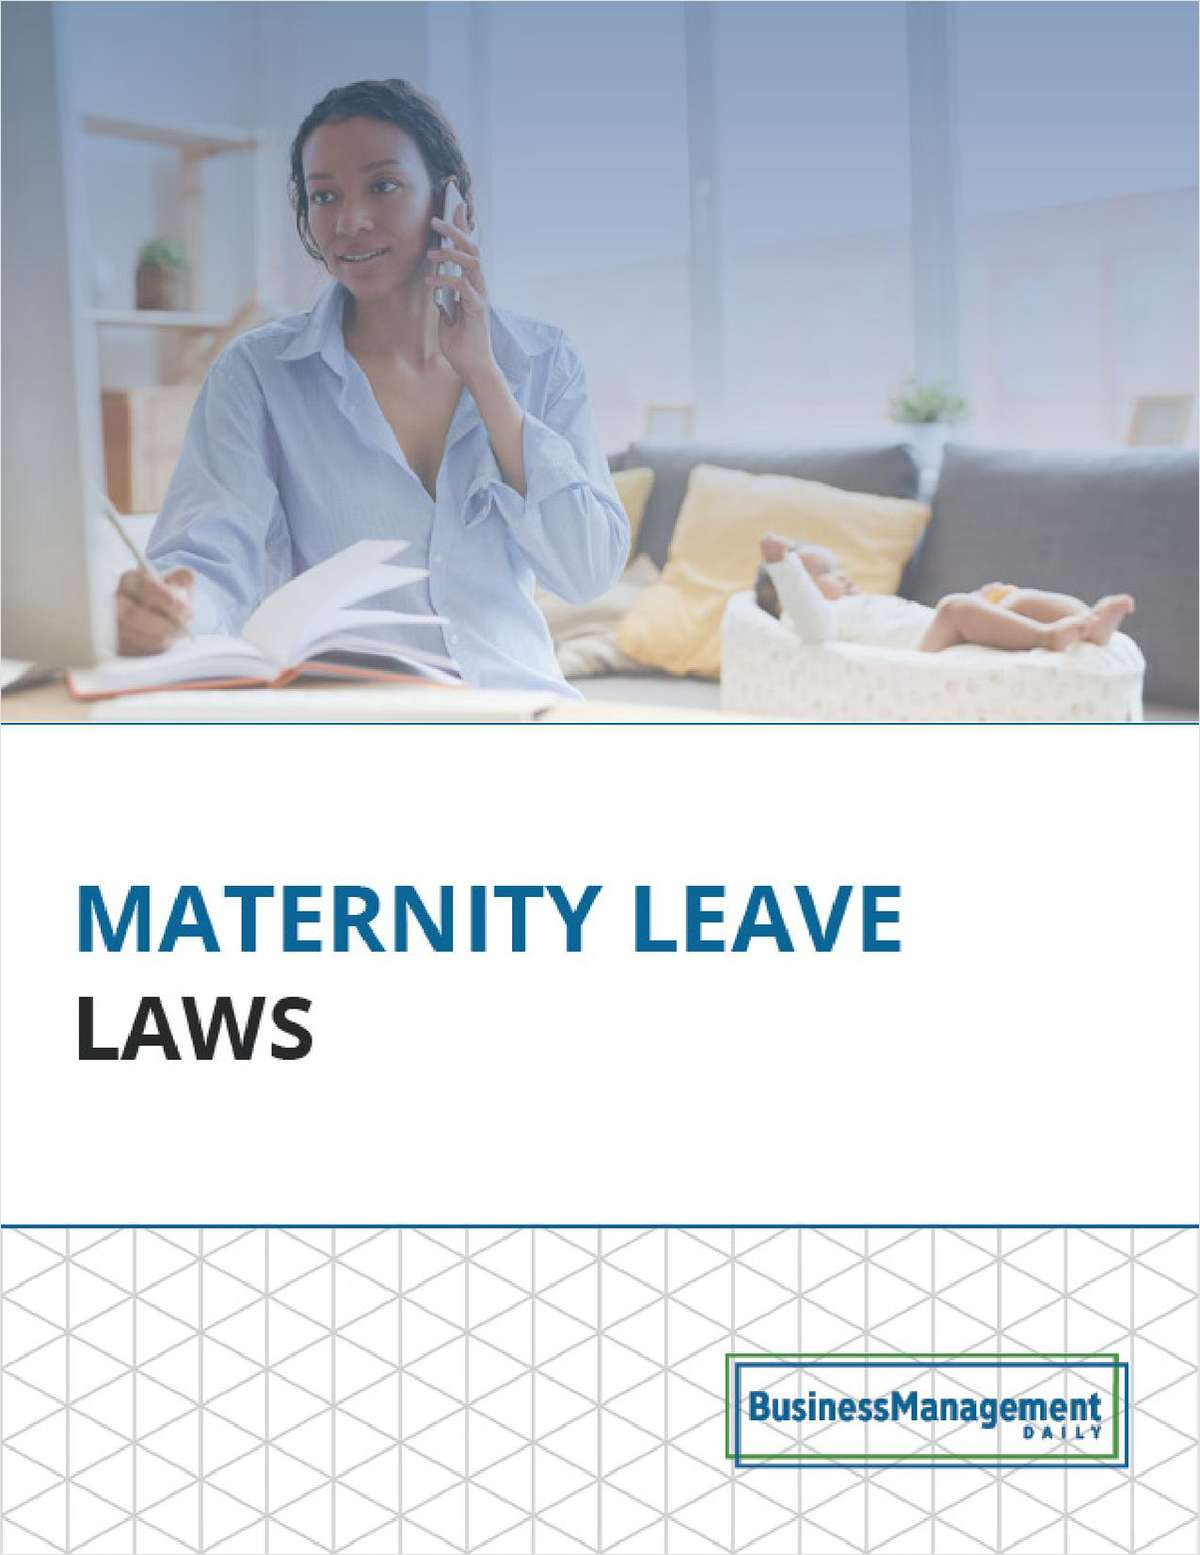 HR Guide for Maternity Leave Laws -- With FREE Sample Leave Policy